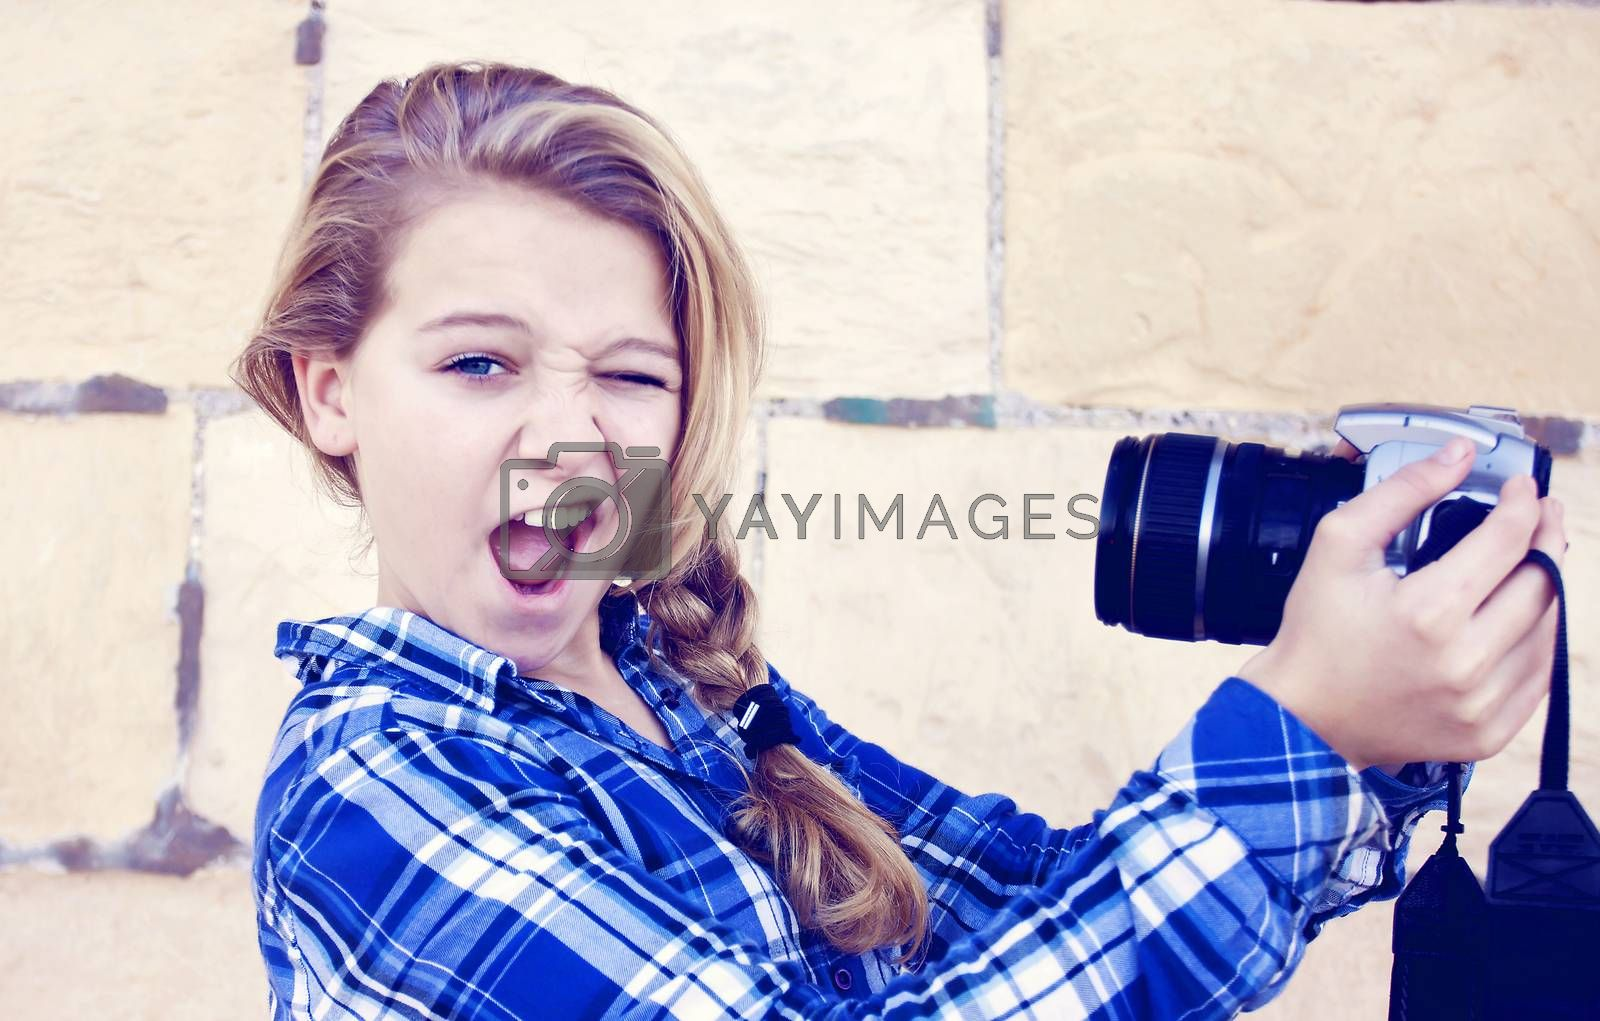 Young teenage girl doing a funny face taking a self portrait with a slr camera. Slight retro tint over image